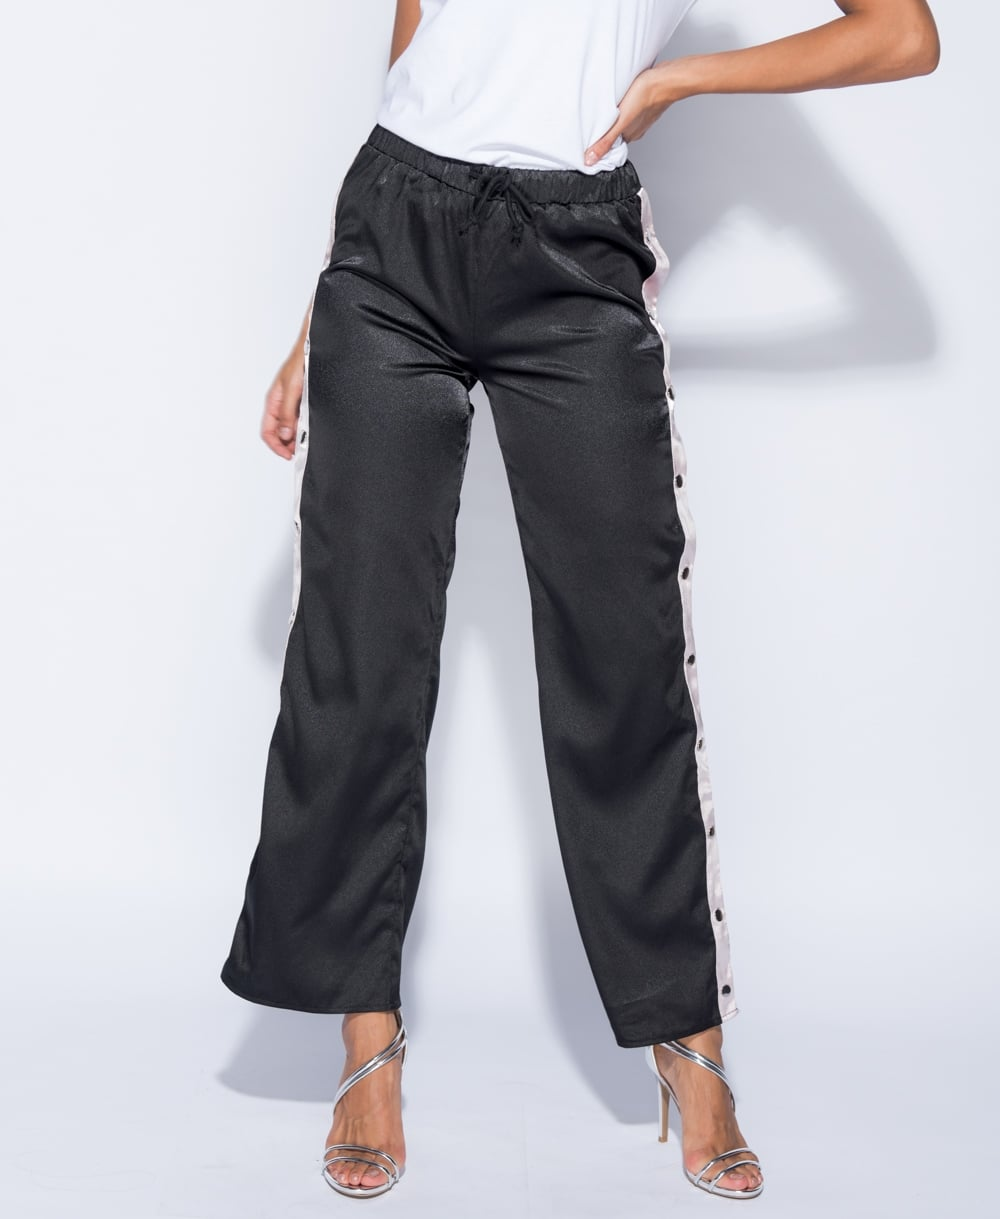 Popper Detail Sports Trousers